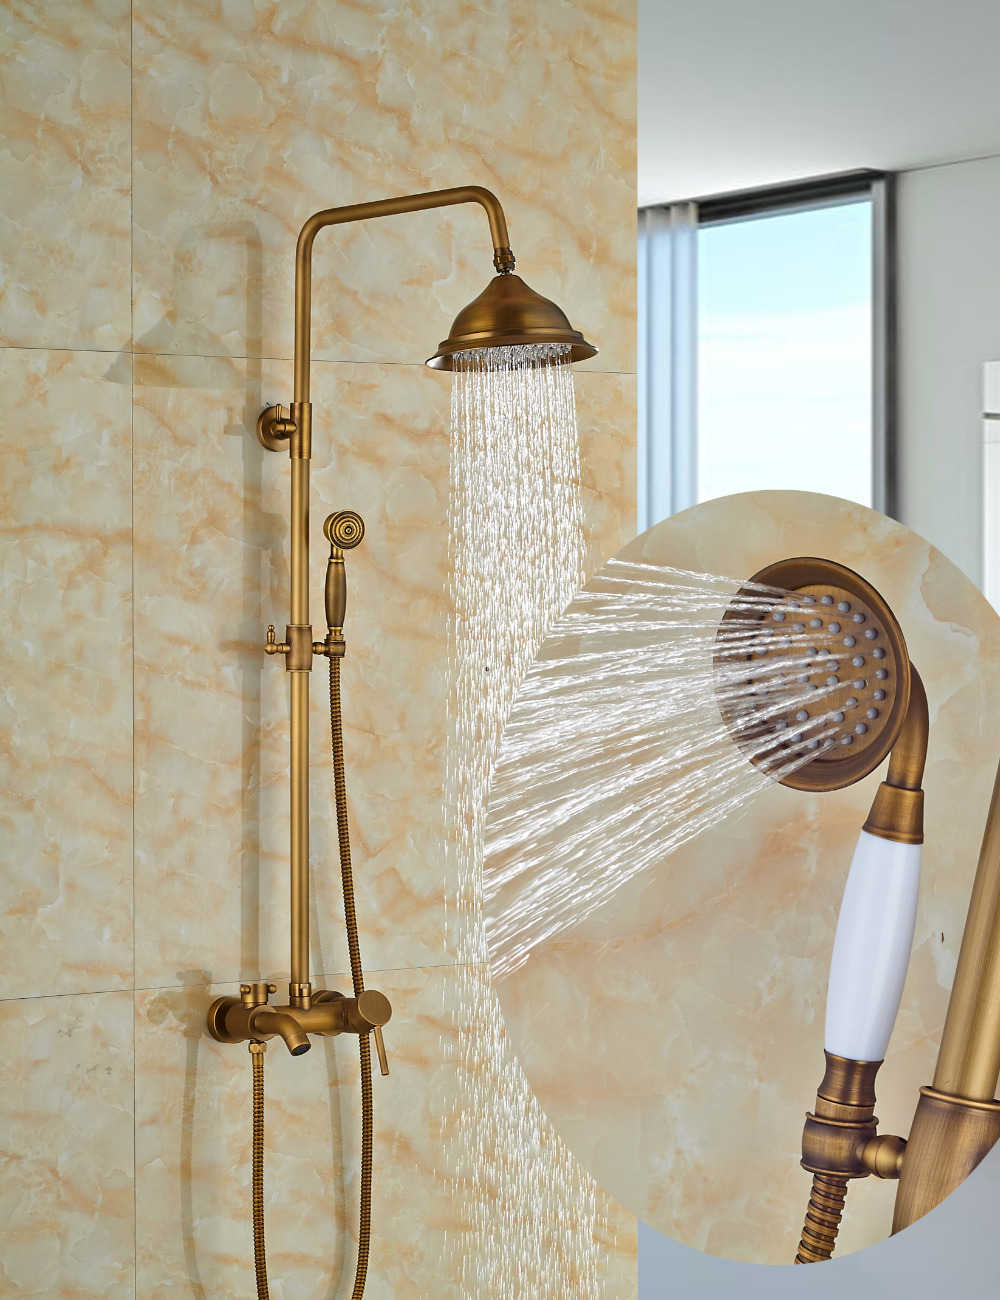 Wholesale And Retail Luxury Antique Brass Rain Set Faucet Tub Spout Mixer Tap W/ Hand Shower Sprayer Wall Mounted wholesale and retail promotion wall mounted bathroom tub faucet spout w hand shower sprayer antique brass shower mixer tap